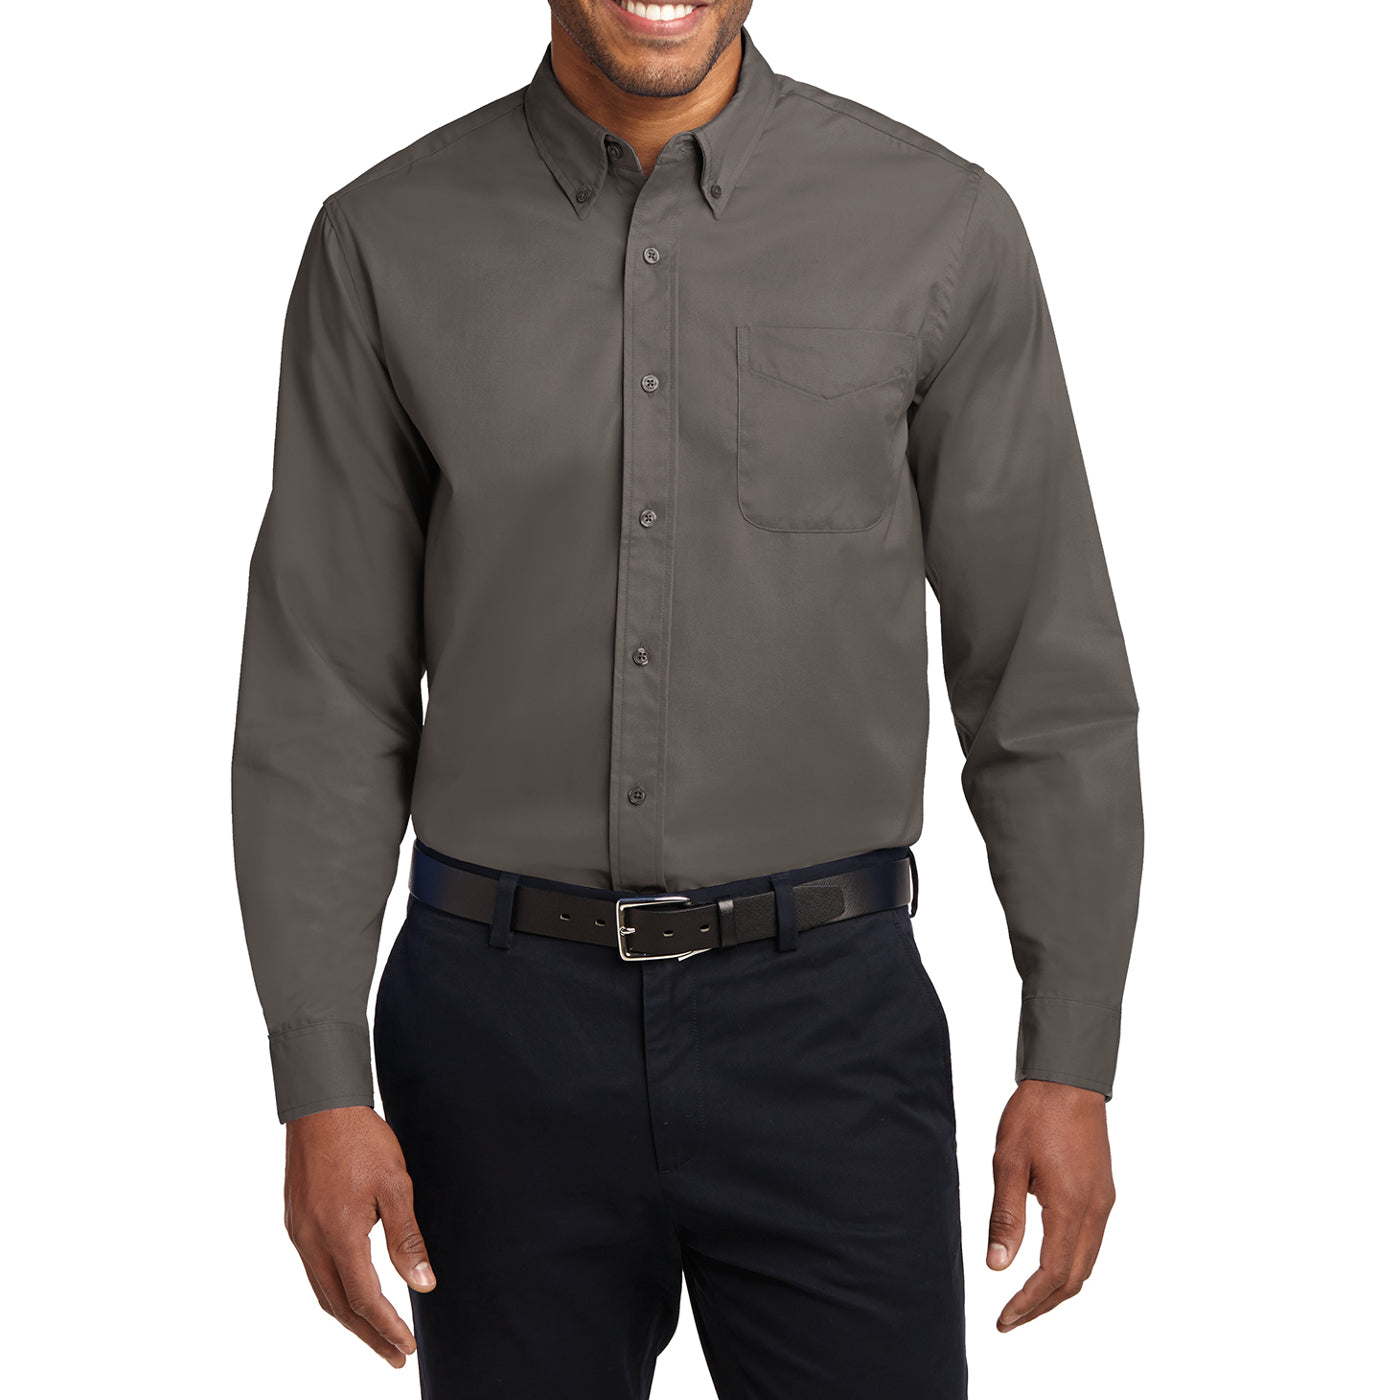 Men's Long Sleeve Easy Care Shirt - Bark - Front